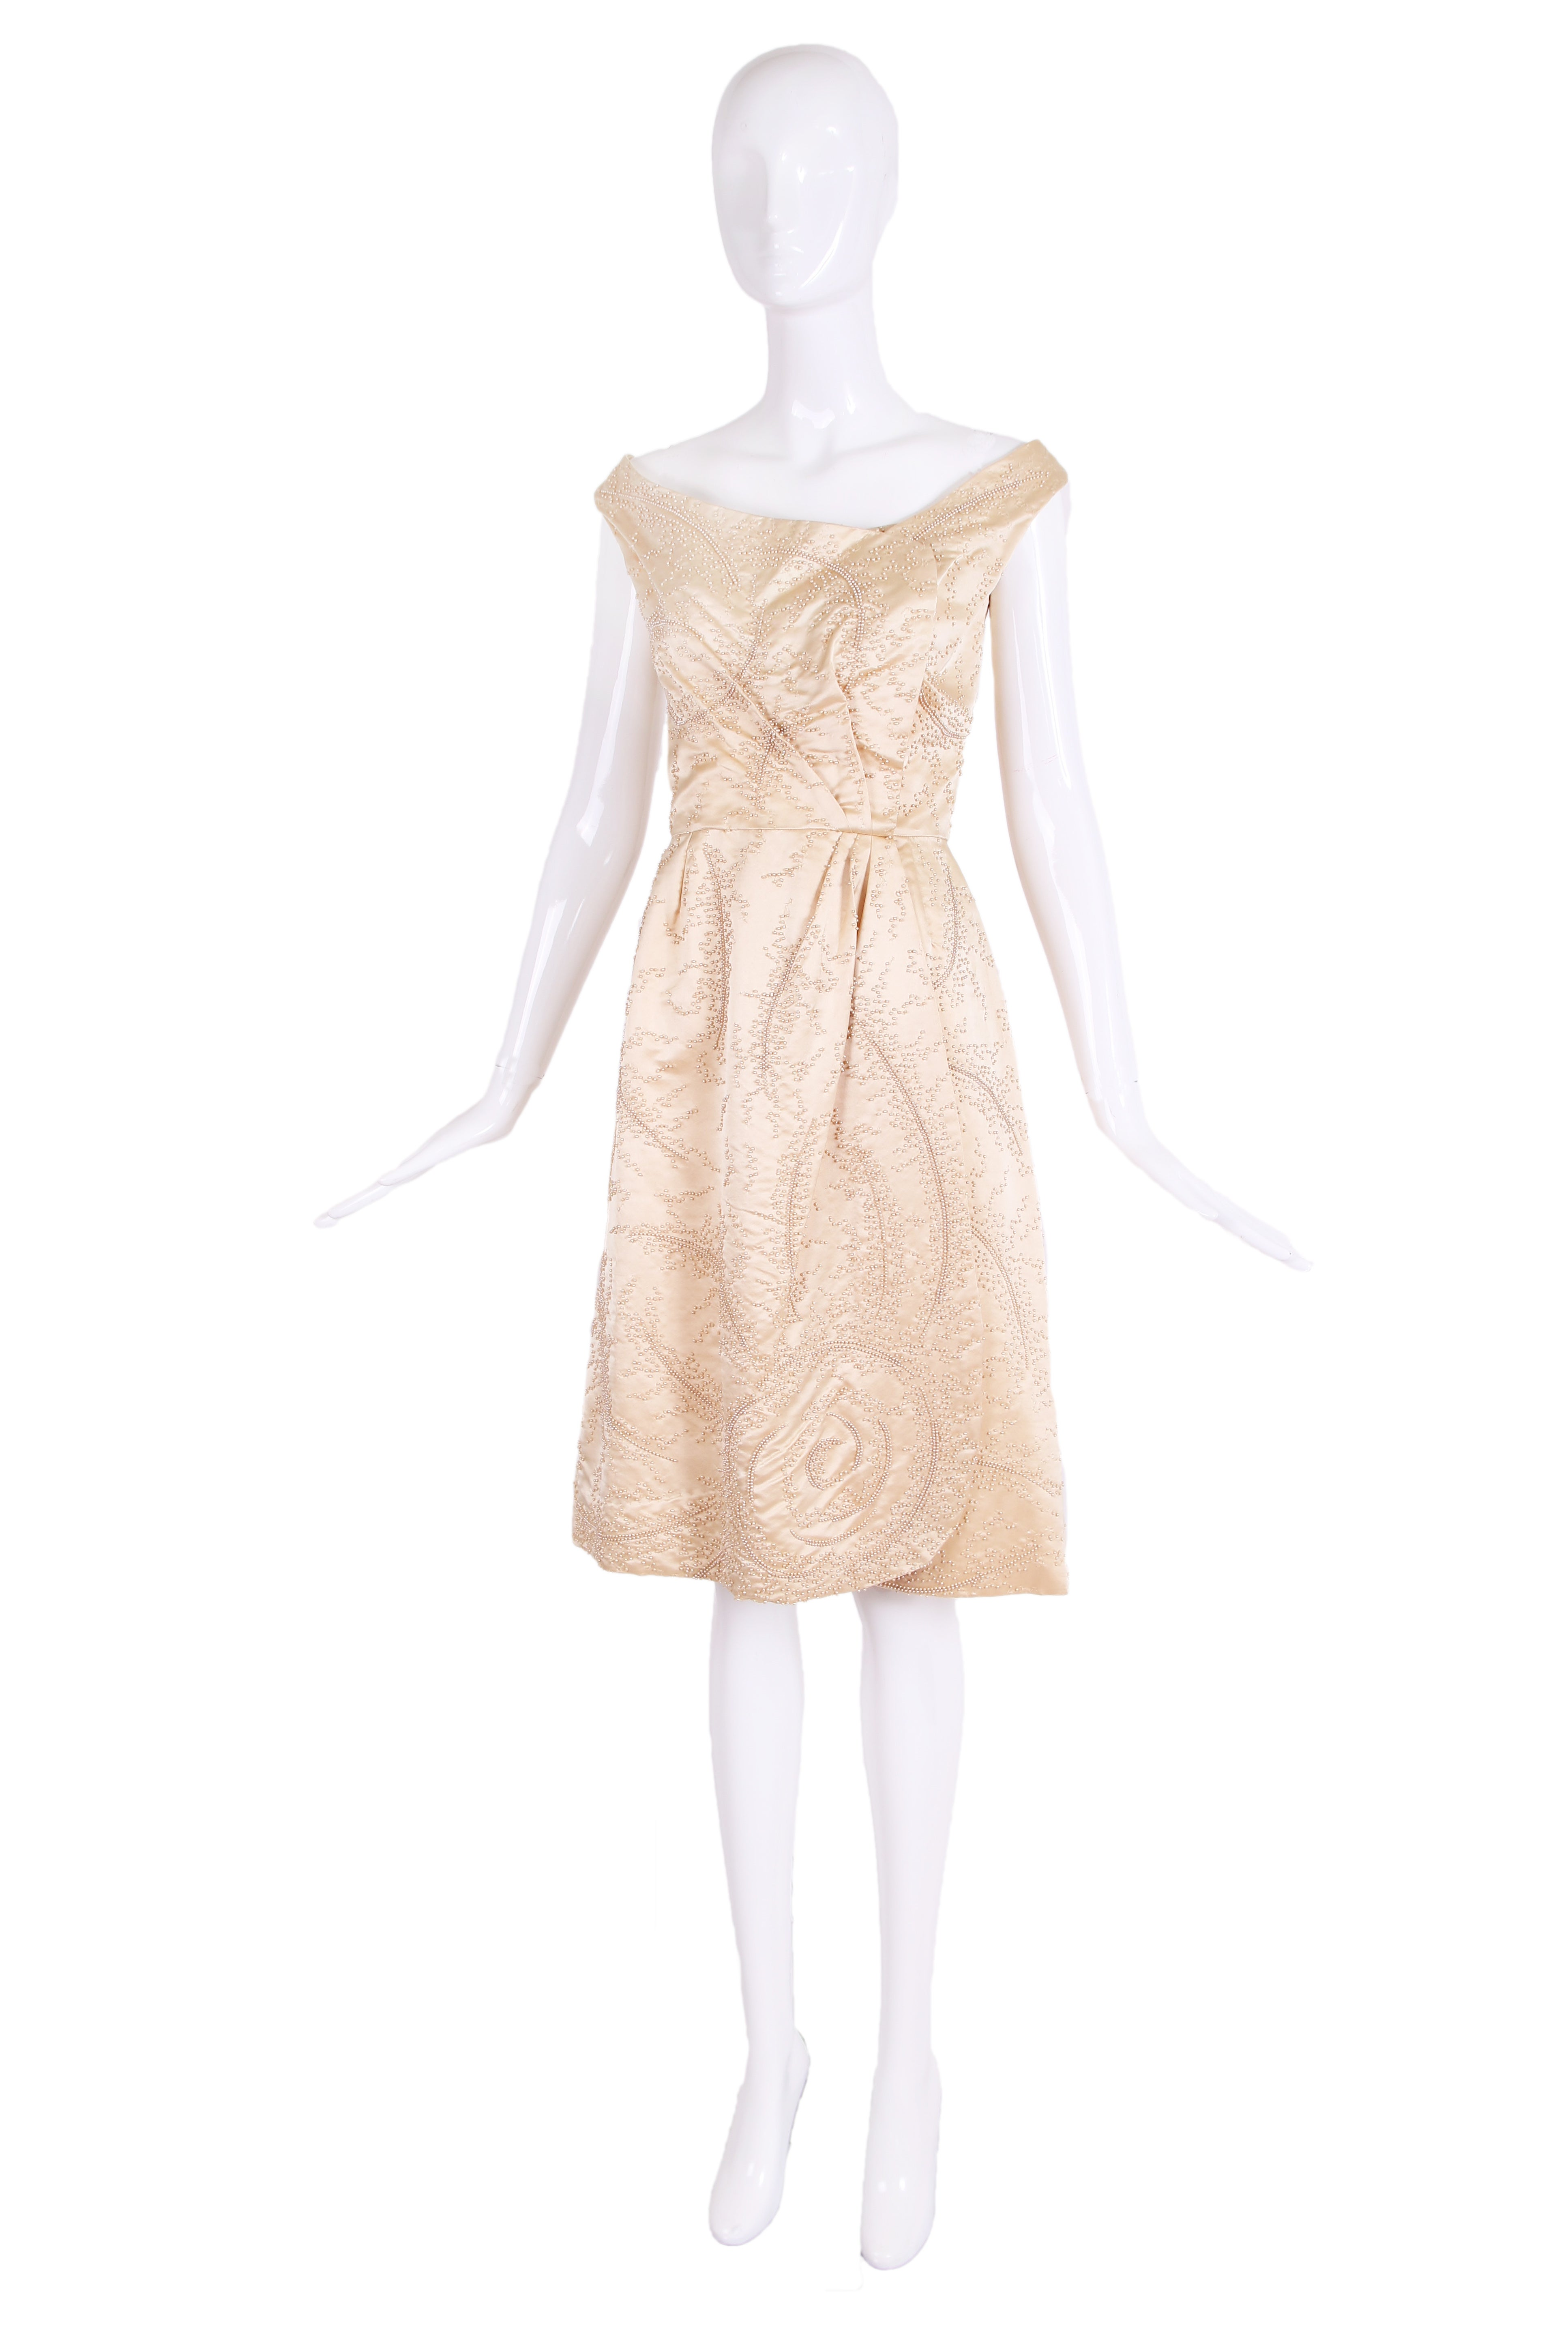 Ceil Chapman Champagne Colored Satin Beaded Cocktail Dress Ca. 1965 For  Sale At 1stdibs